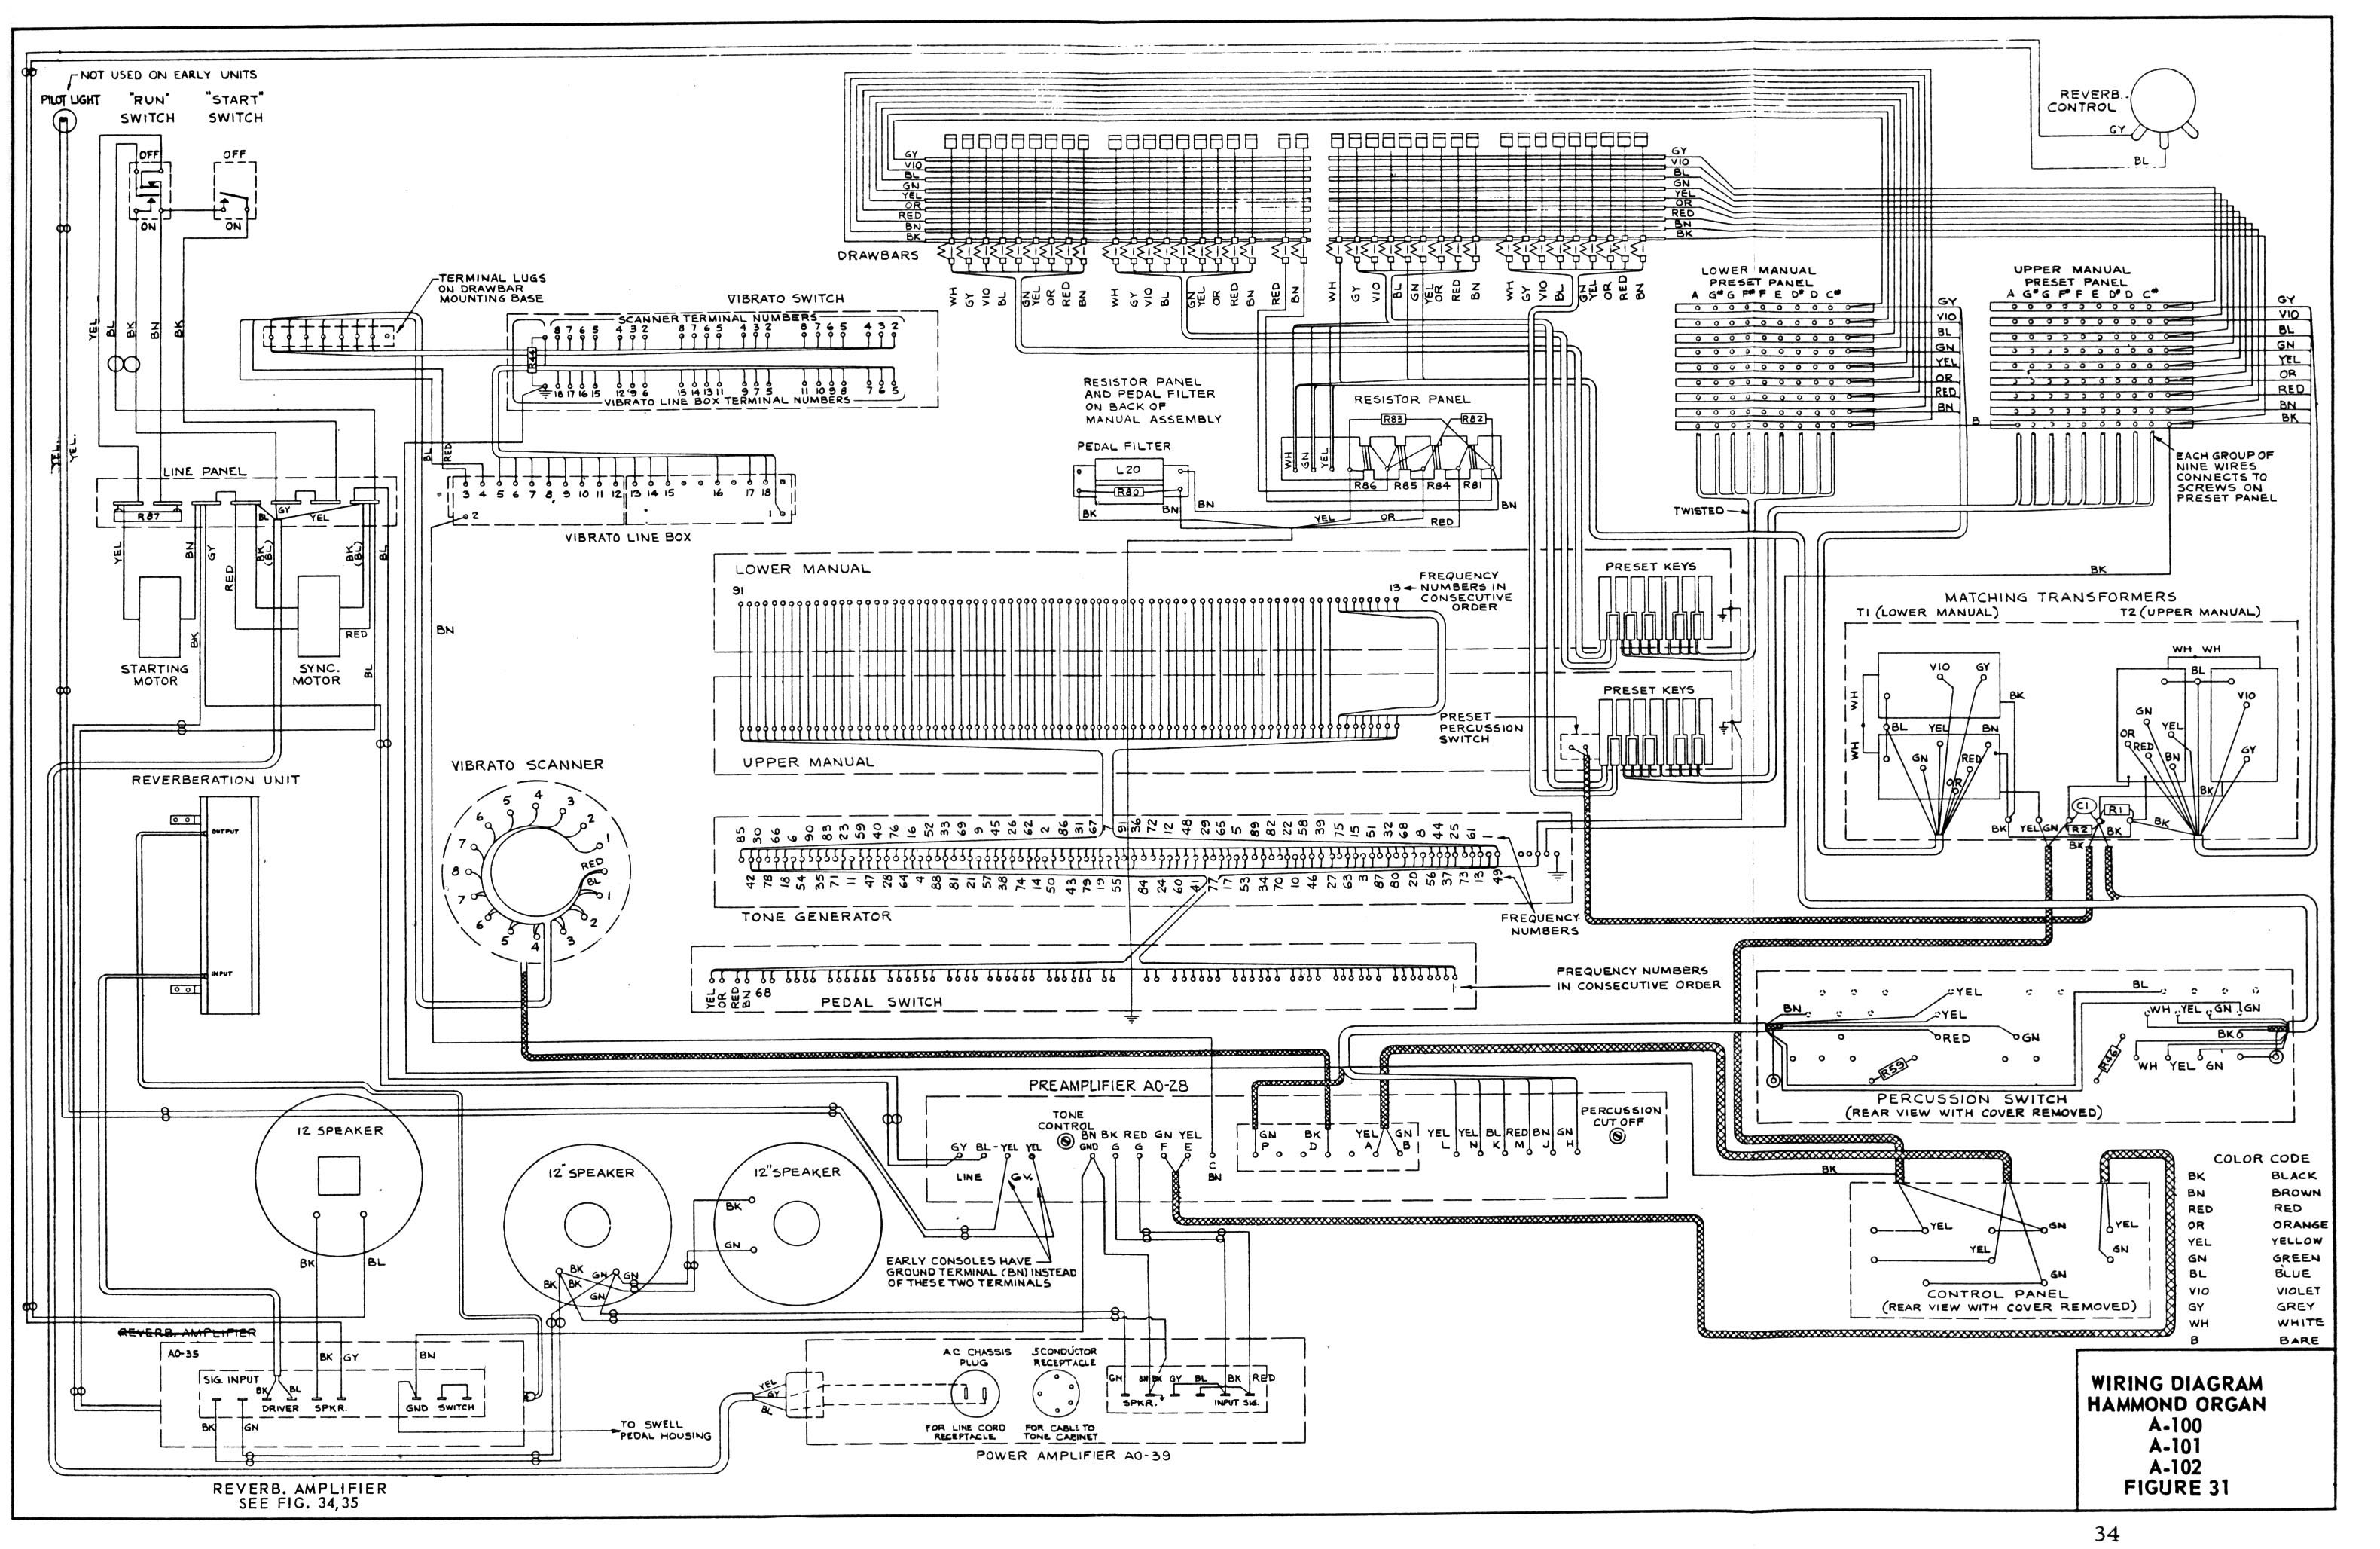 fisher plow wiring diagram fisher plow wiring diagram 2005 gmc a 100 service manual